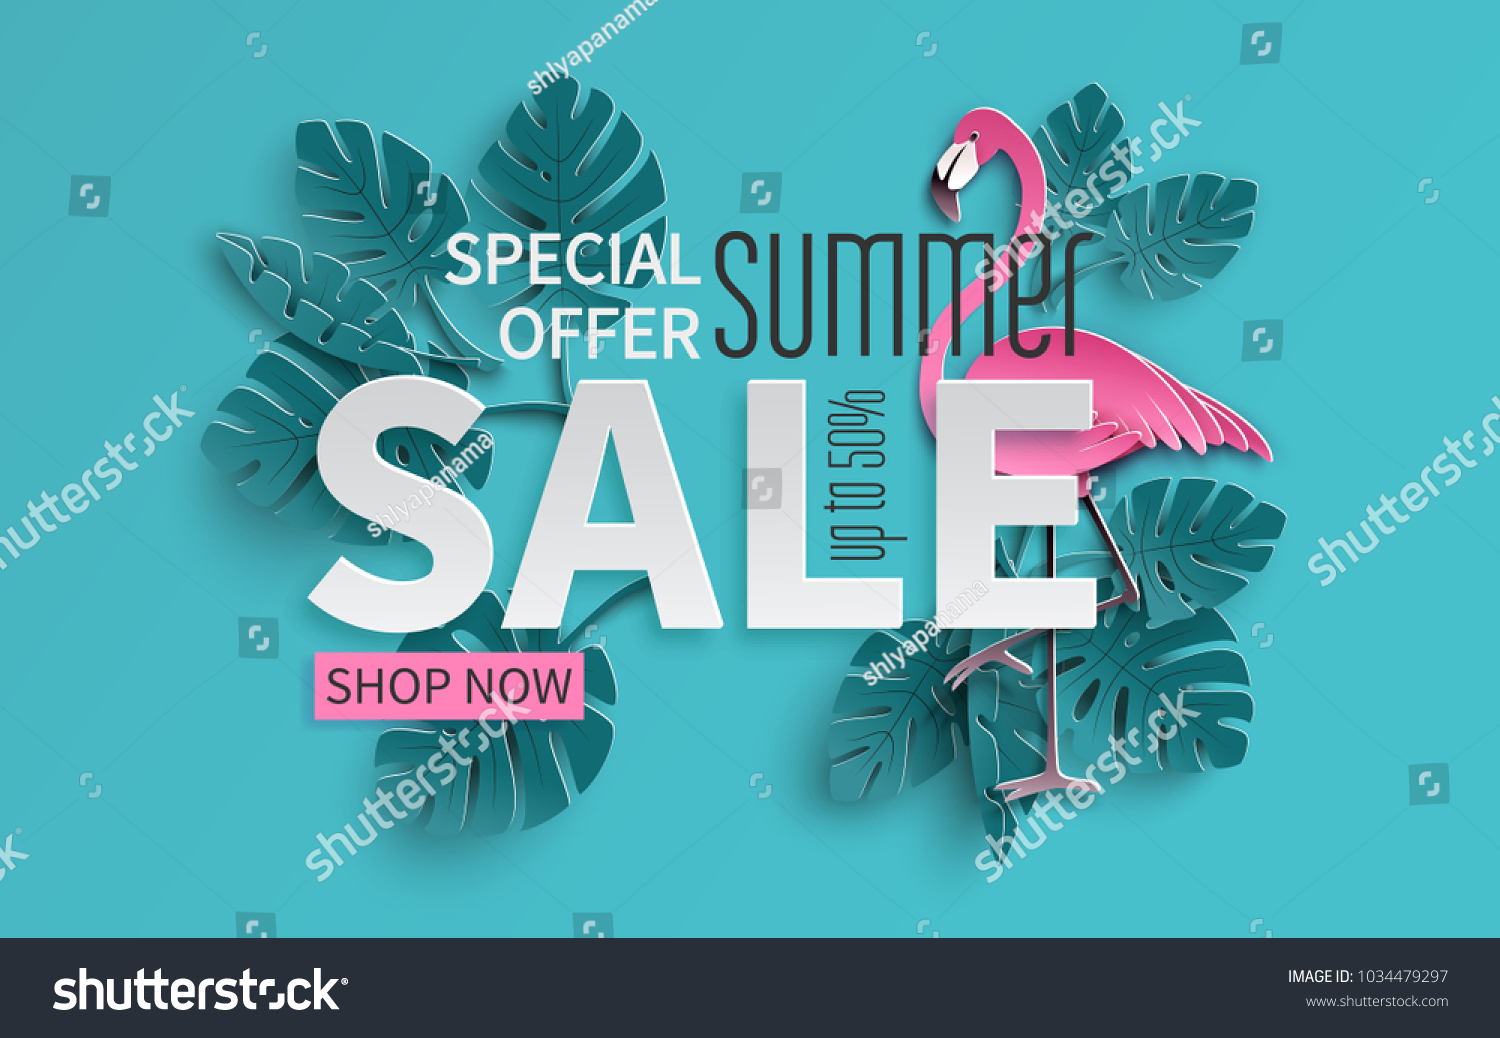 Summer sale banner with paper cut flamingo and tropical leaves background, exotic floral design for banner, flyer, invitation, poster, web site or greeting card. Paper cut style, vector illustration